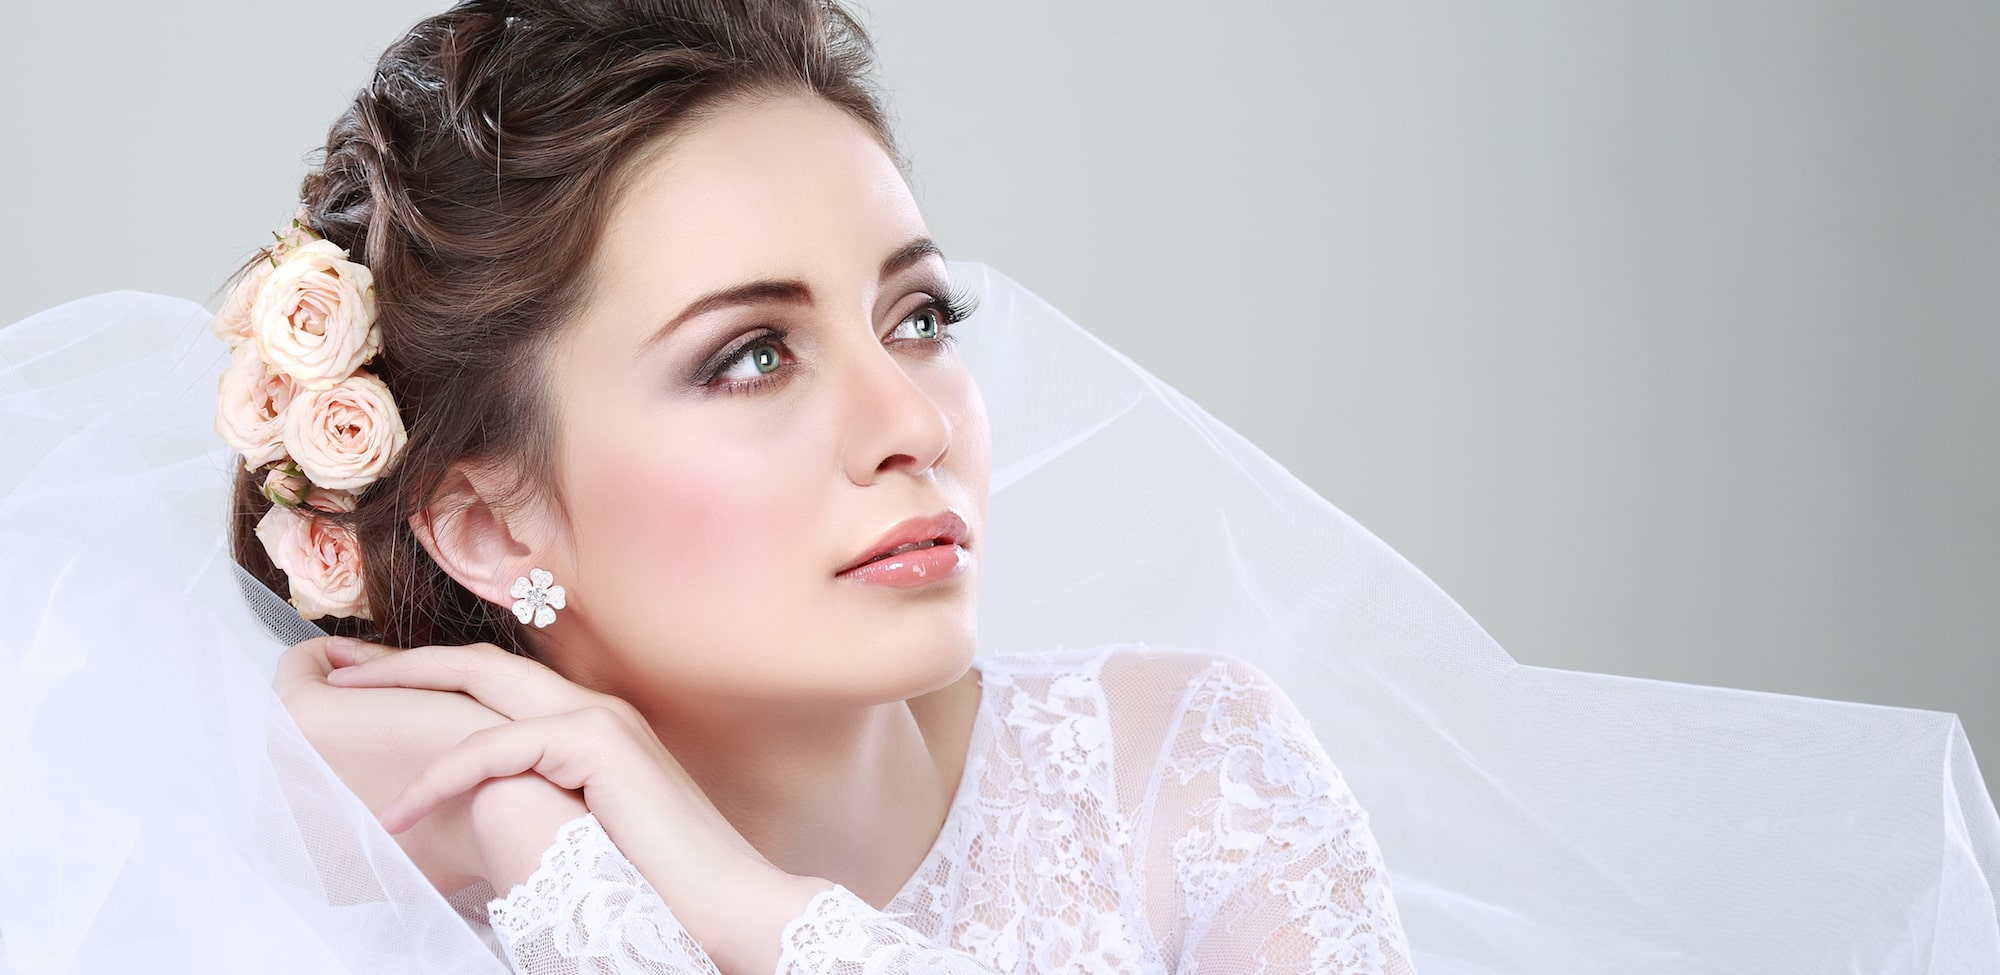 Cosmetic Town shares the secrets of bridal cosmetic surgery